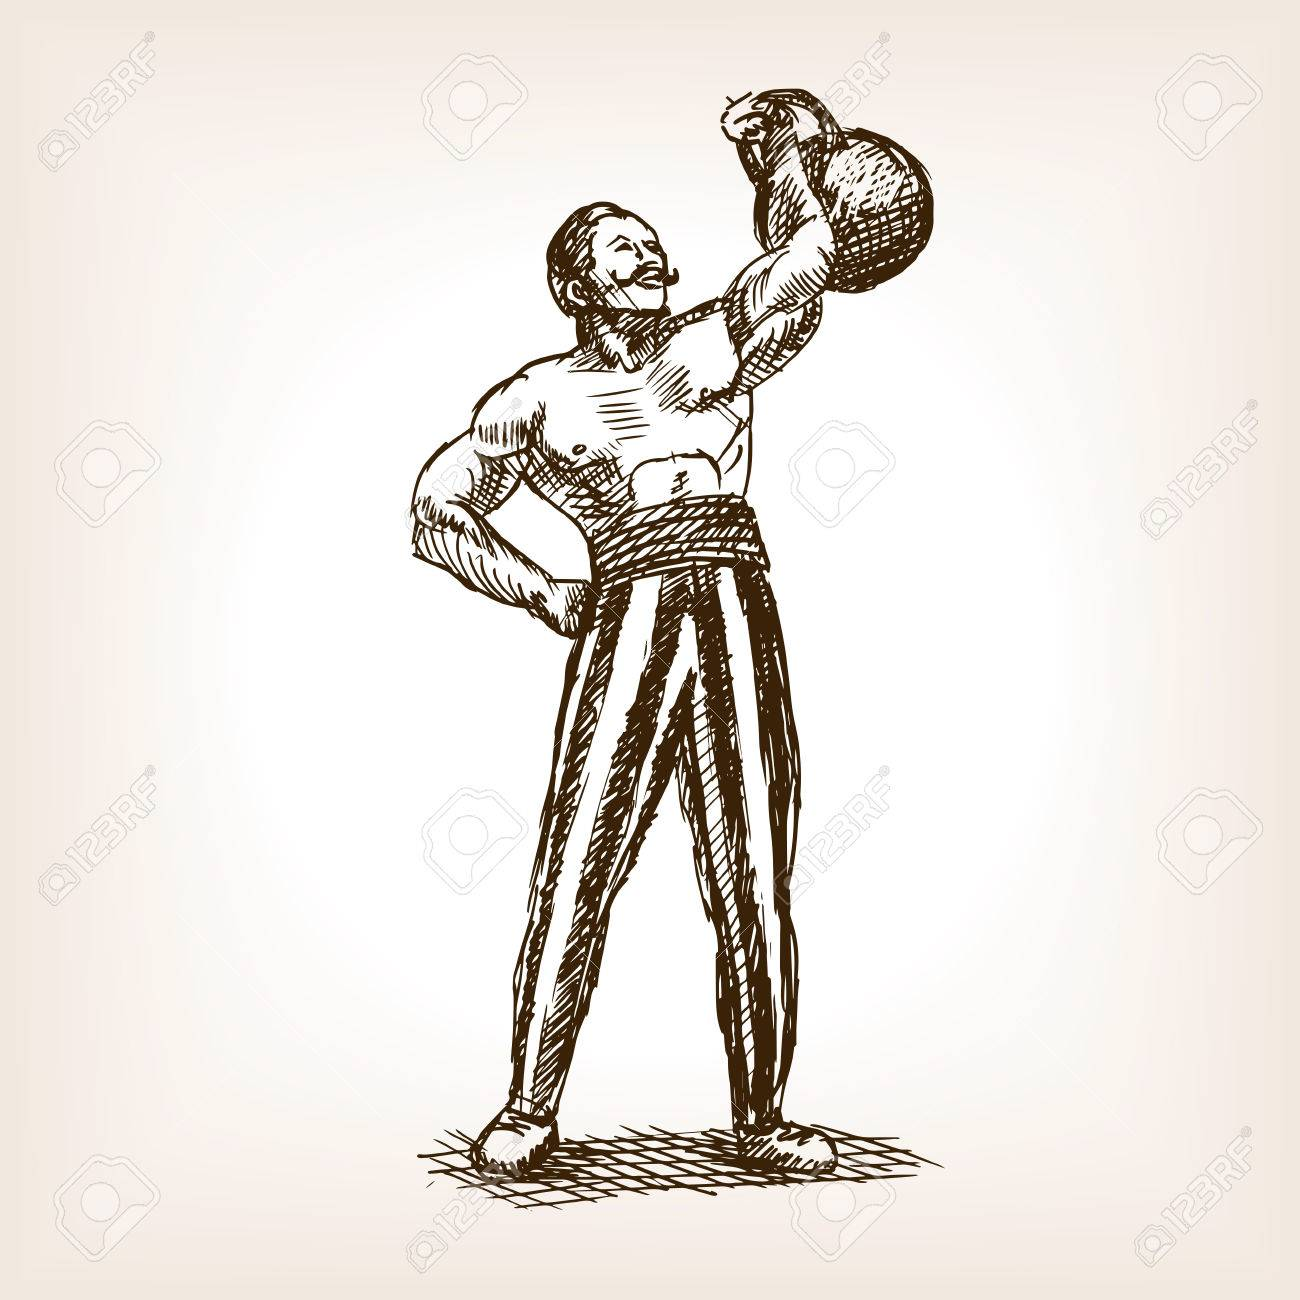 1300x1300 Strong Man With Kettlebell Sketch Style Vector Illustration